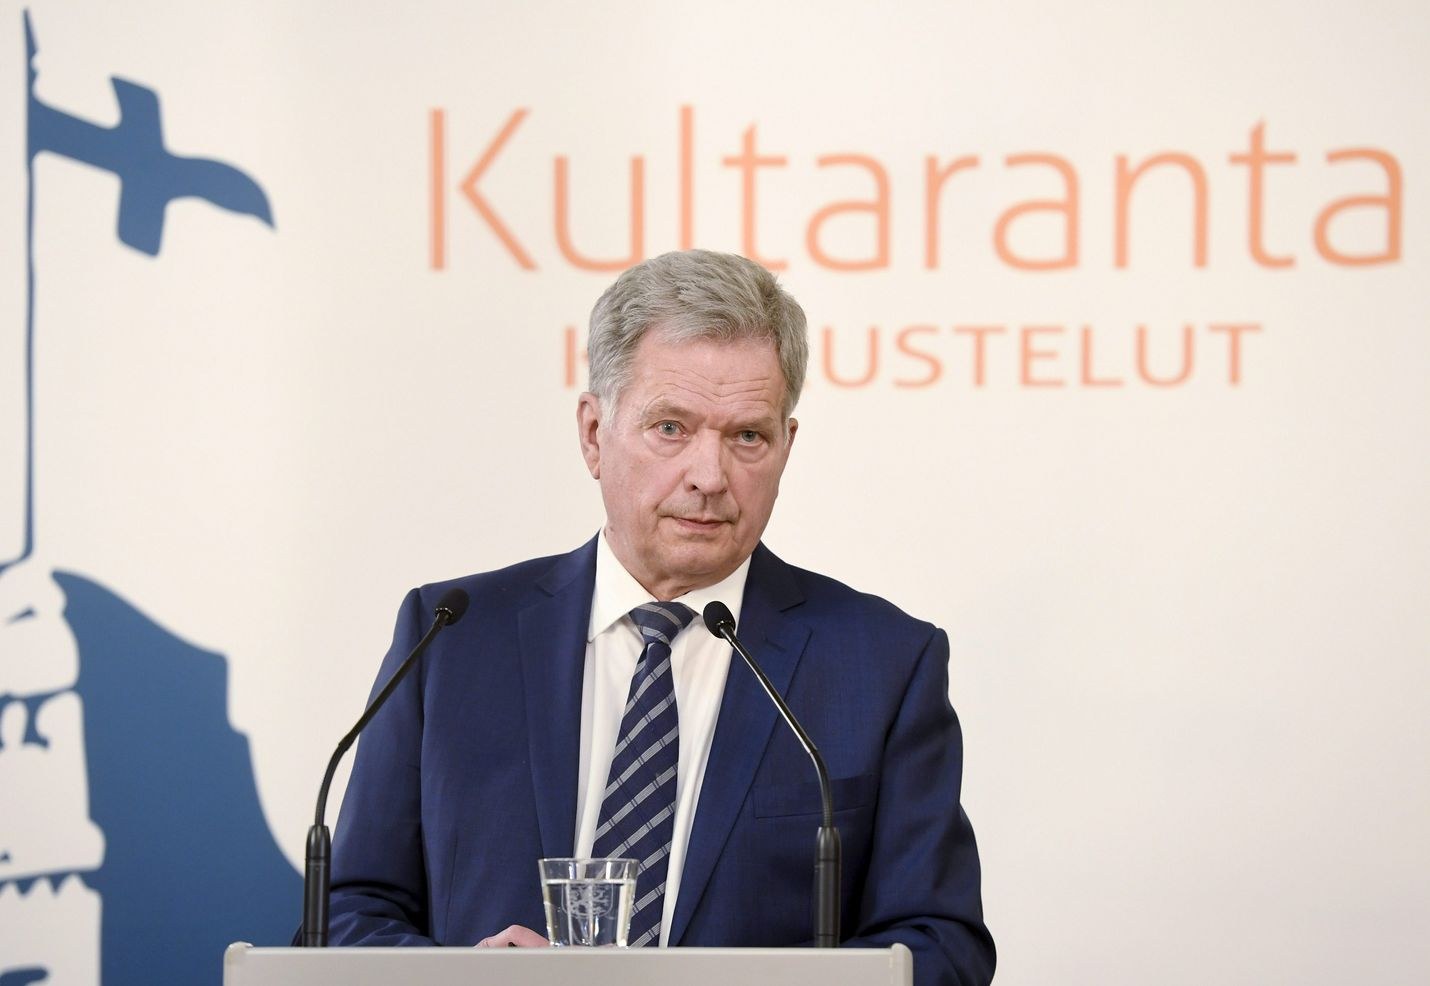 President Sauli Niinistö criticises the idea of bailing out eurozone countries during the coronavirus pandemic. He seems to be at odds with the Finnish Government which has broadly welcomed the proposals put forward by the French and Germans.